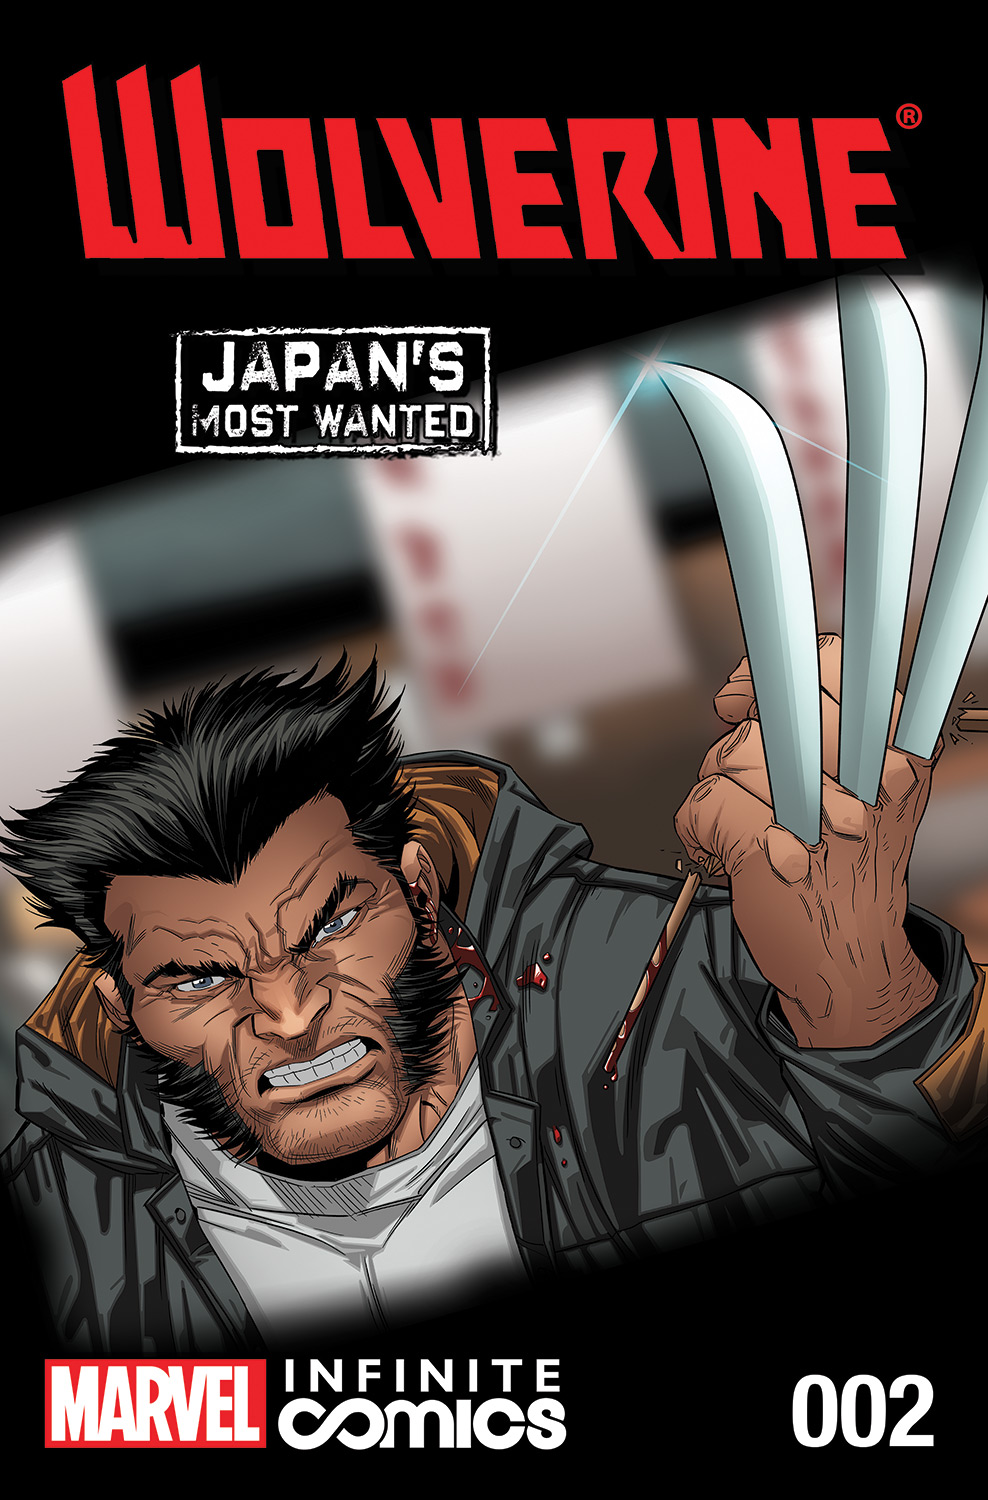 Wolverine: Japan's Most Wanted: Infinite Comic Vol 1 2